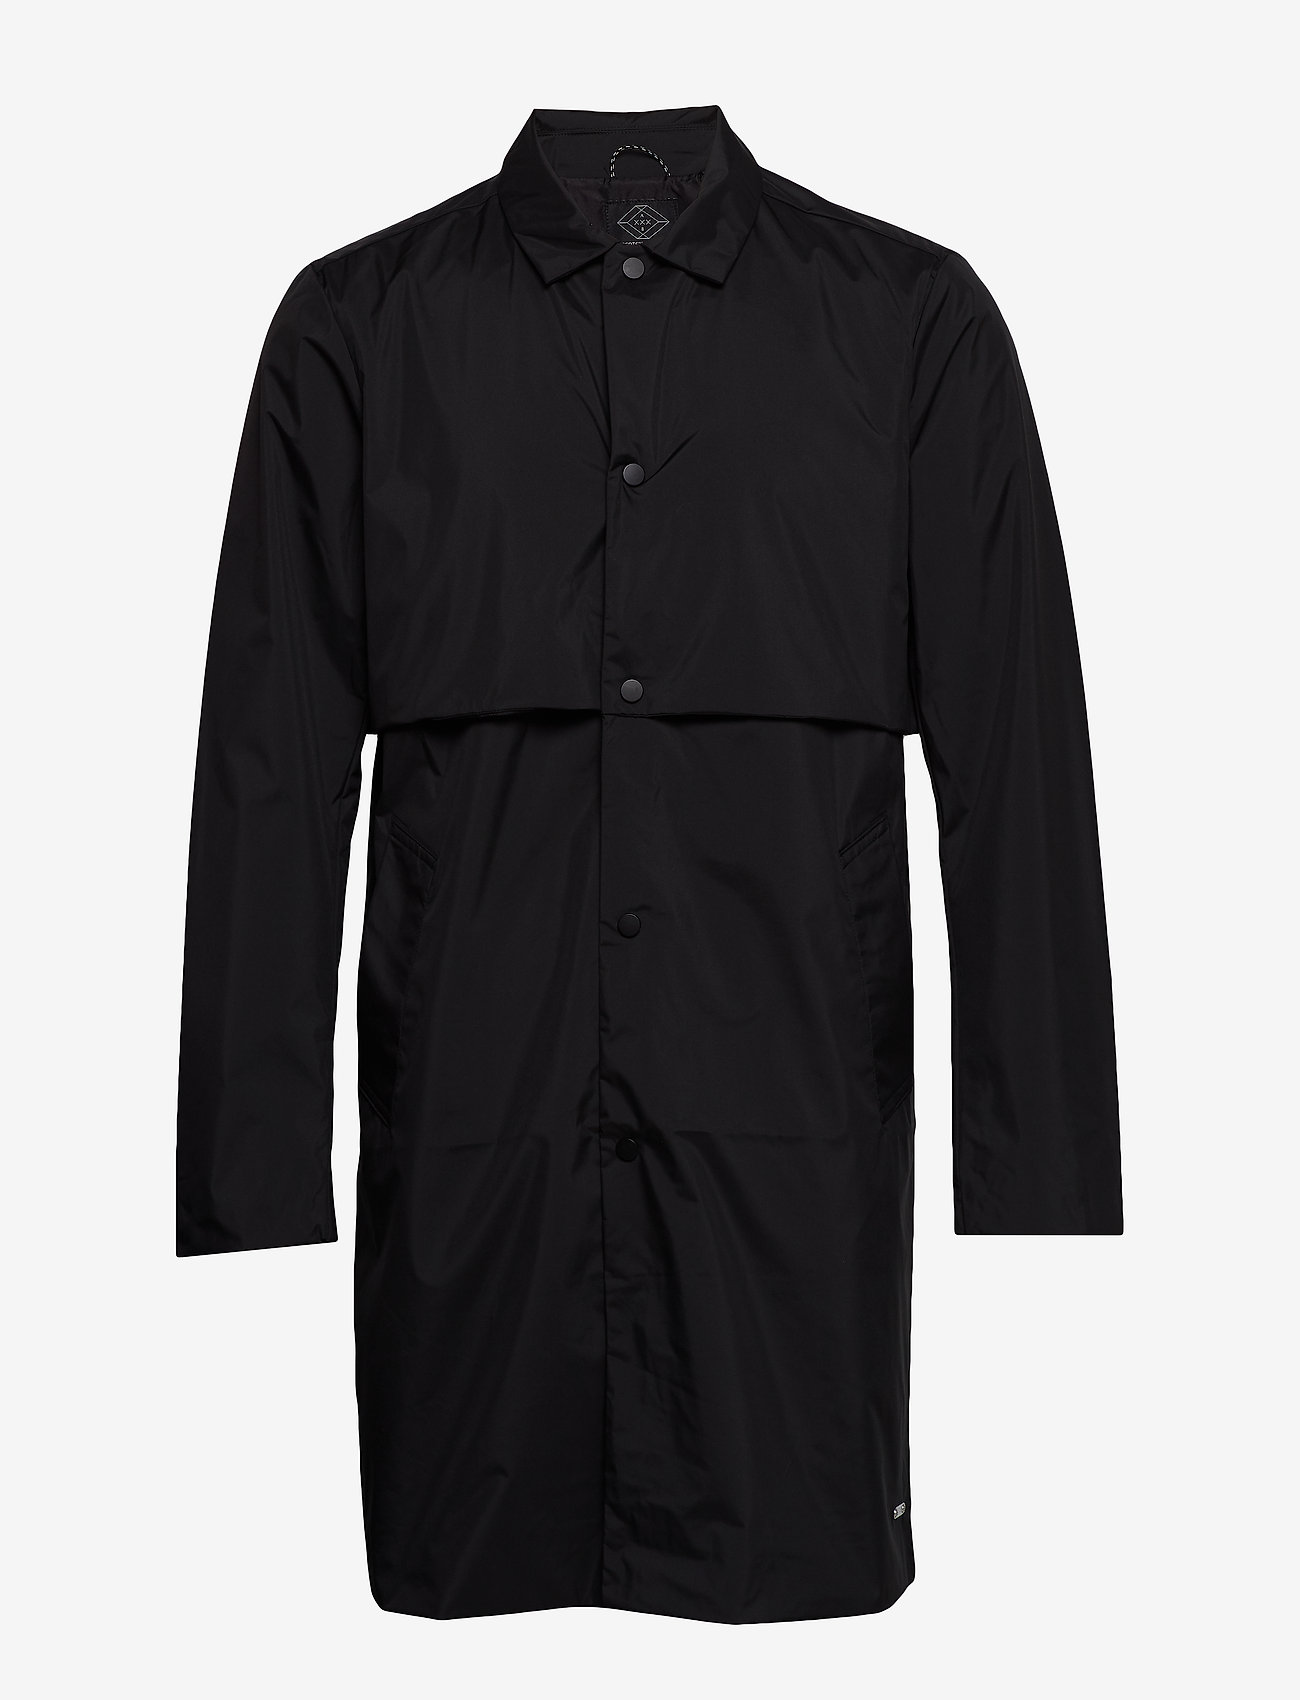 Scotch & Soda - Ams Blauw clean trenchcoat in coated quality - trench coats - black - 0